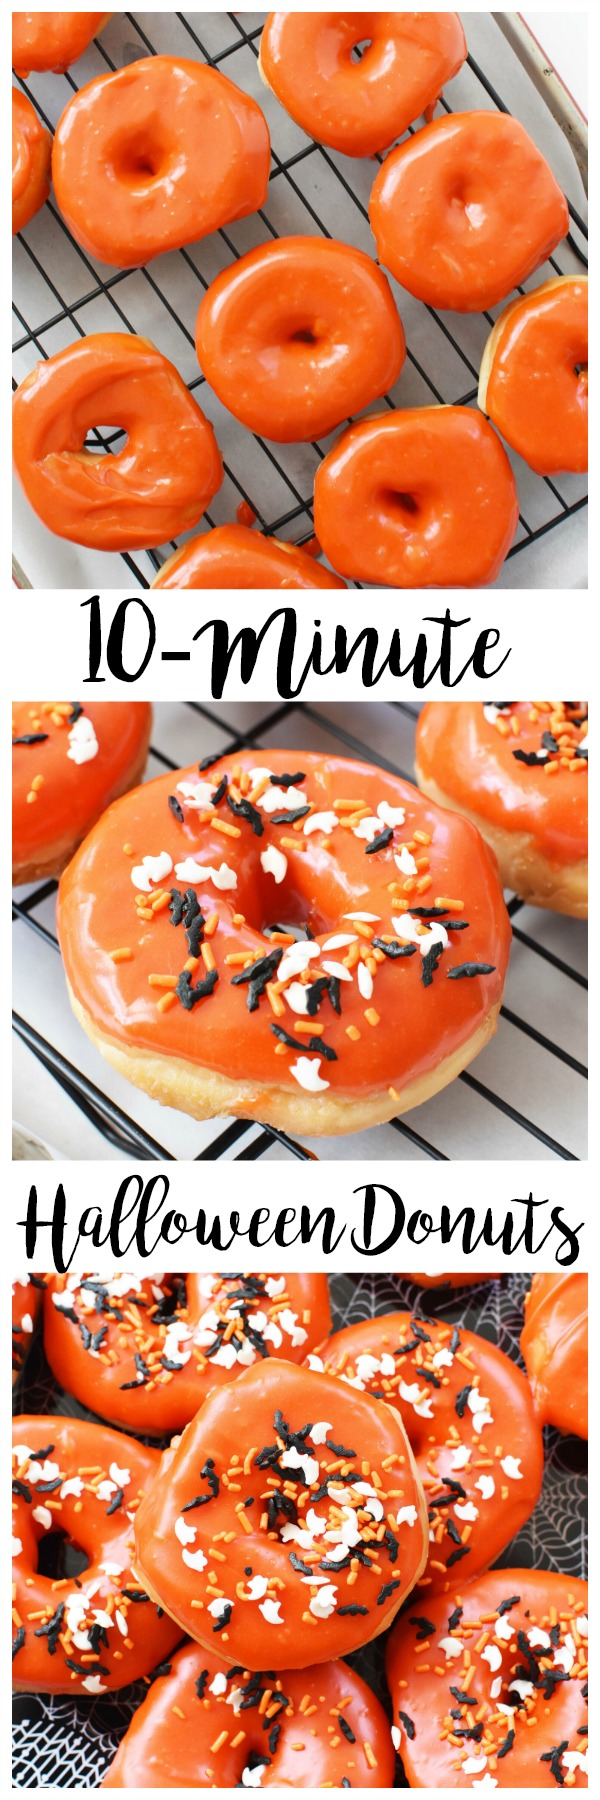 Easy Halloween Donuts You Can Make Today- Semi-Homemade Halloween Donuts that are sure to be the talk of the party because they require no fussing with dough! These are orange frosted and ready in less time than you think!